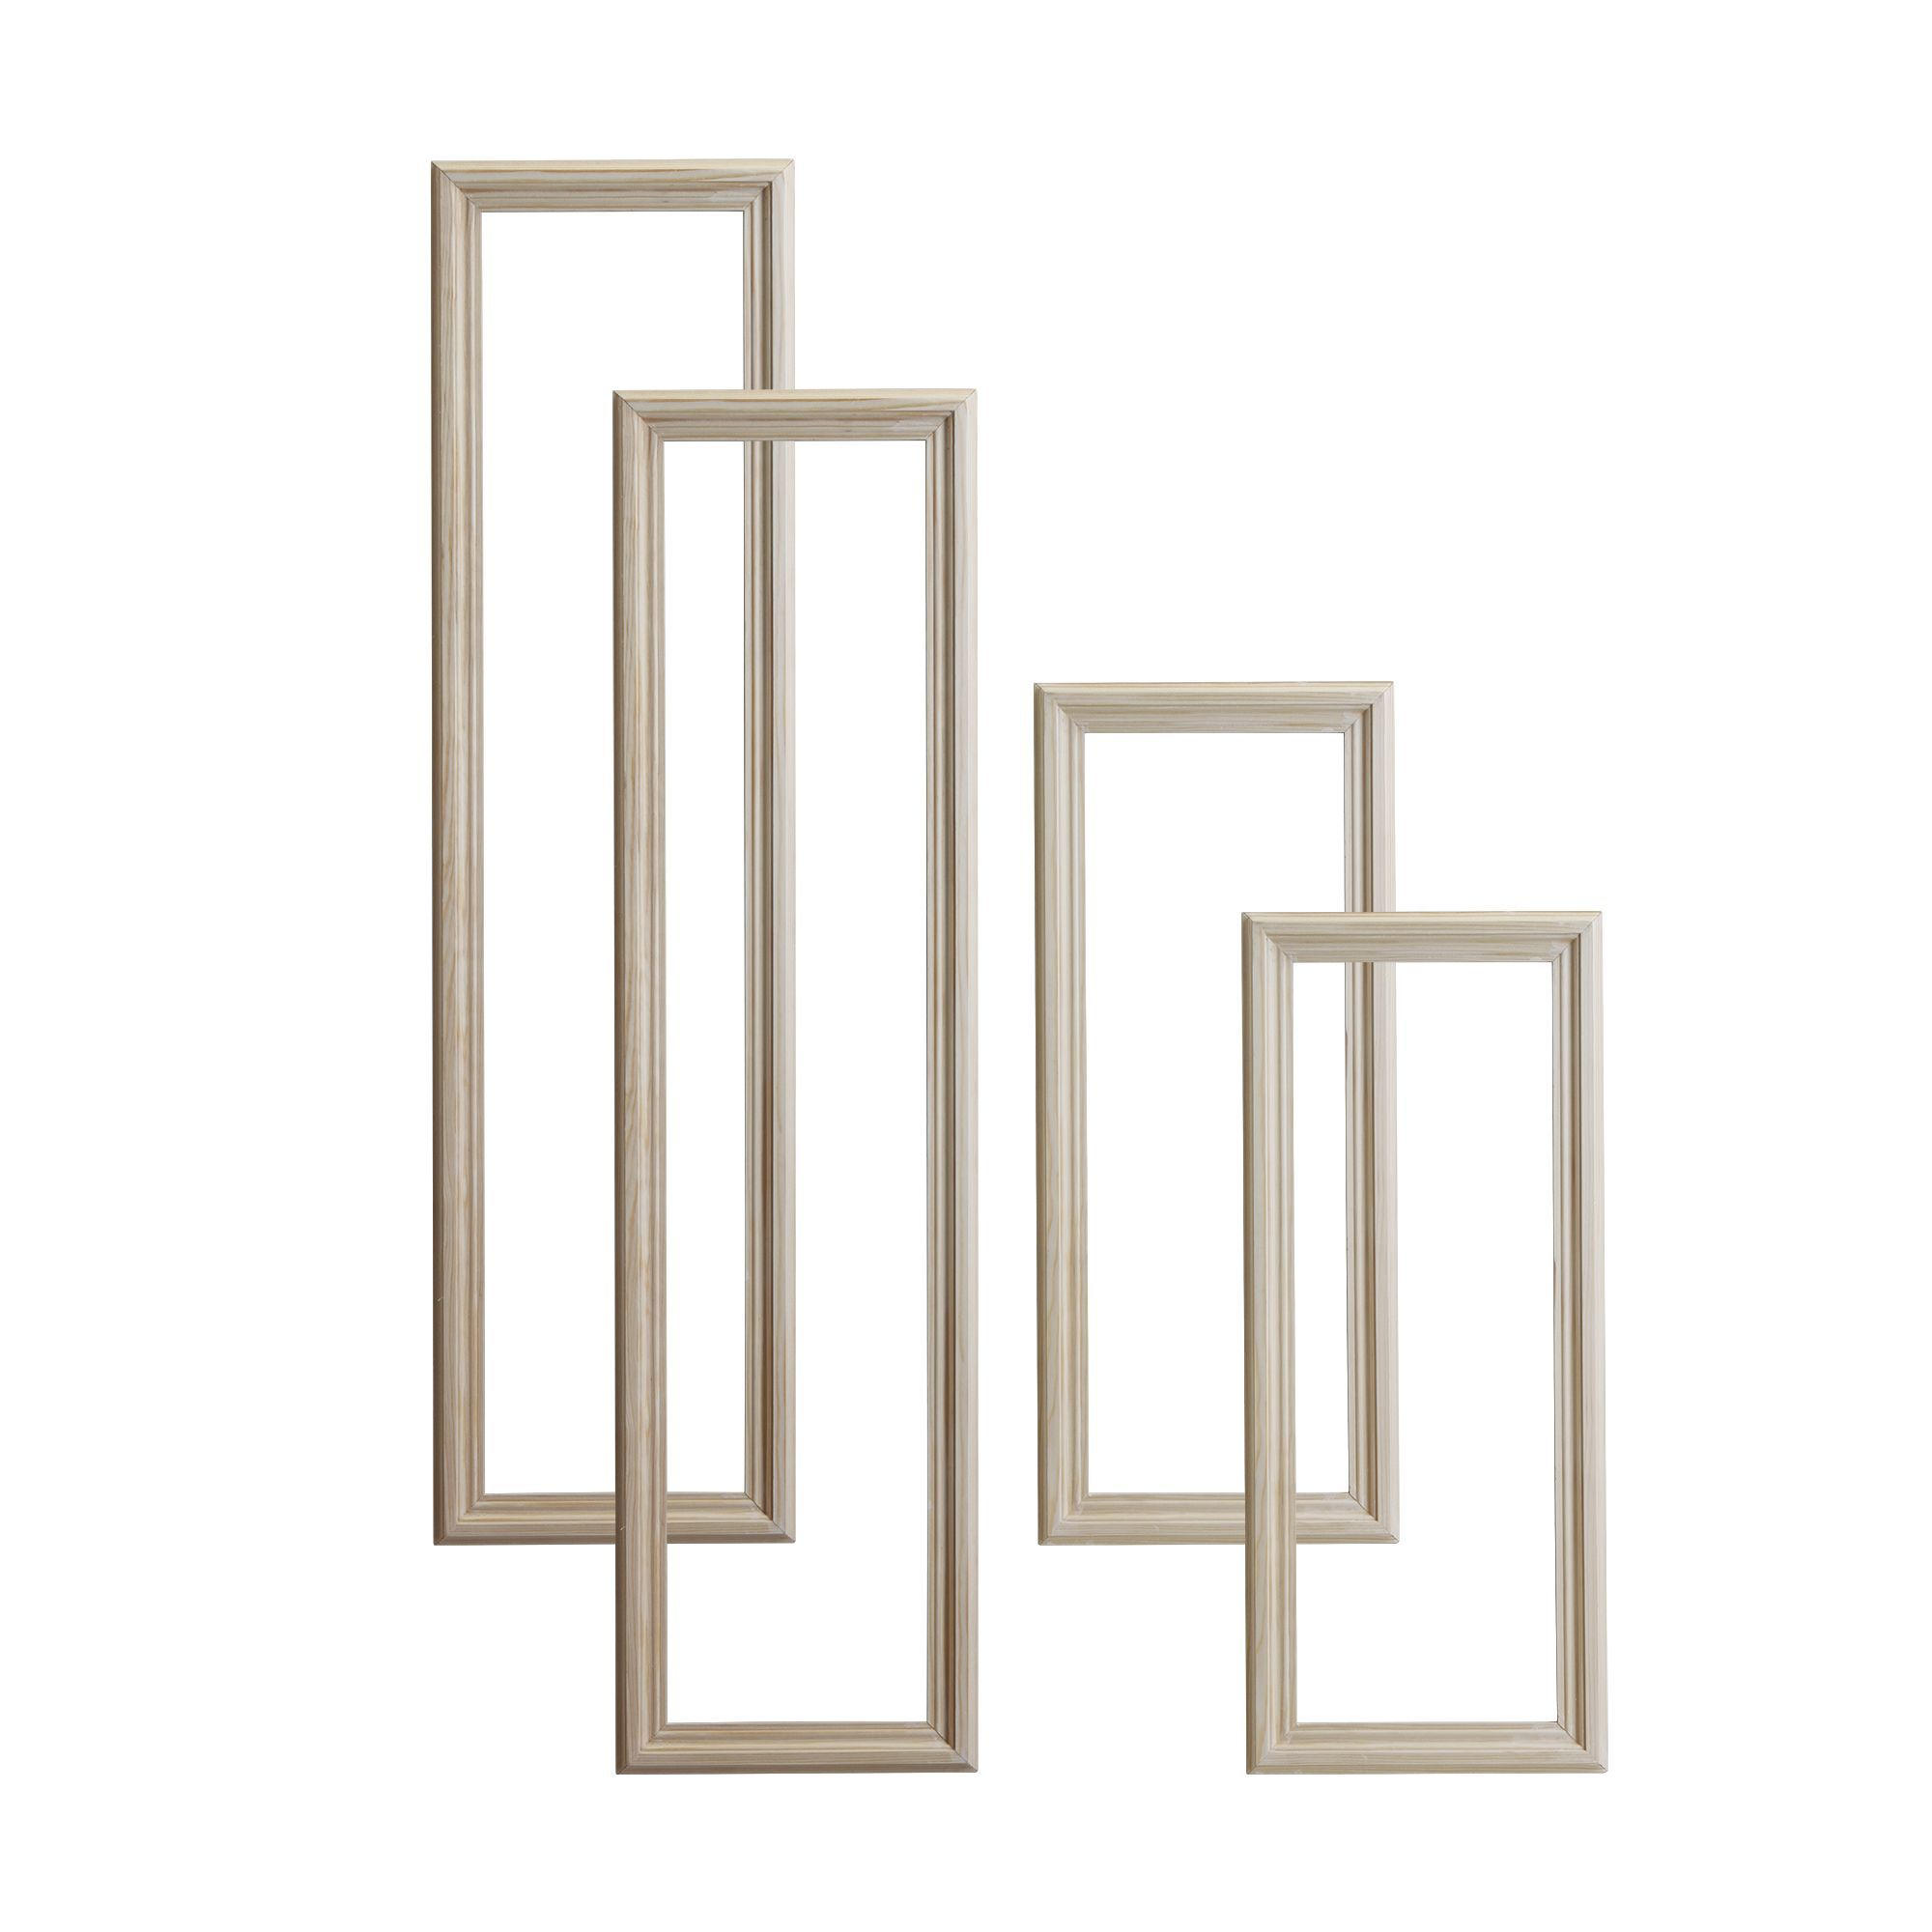 Diy At B Q: 4 Panel Door Moulding Kit, Pack Of 4